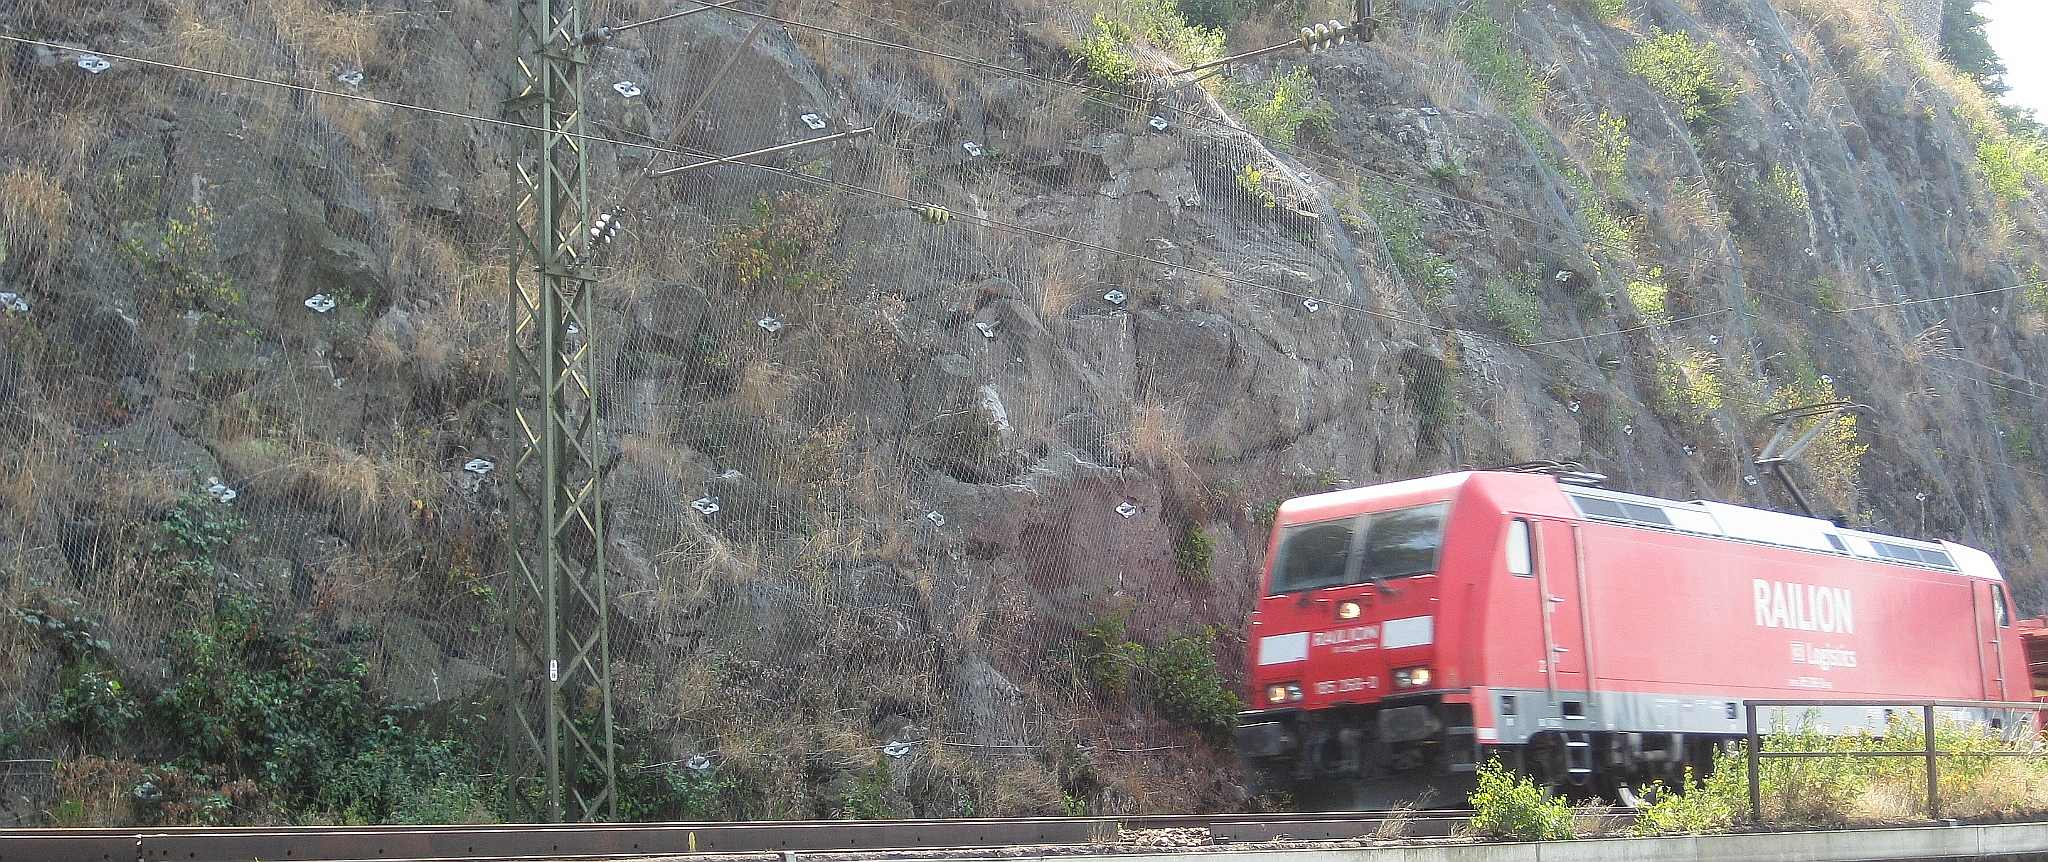 Train and rockface stabilized with TECCO® mesh